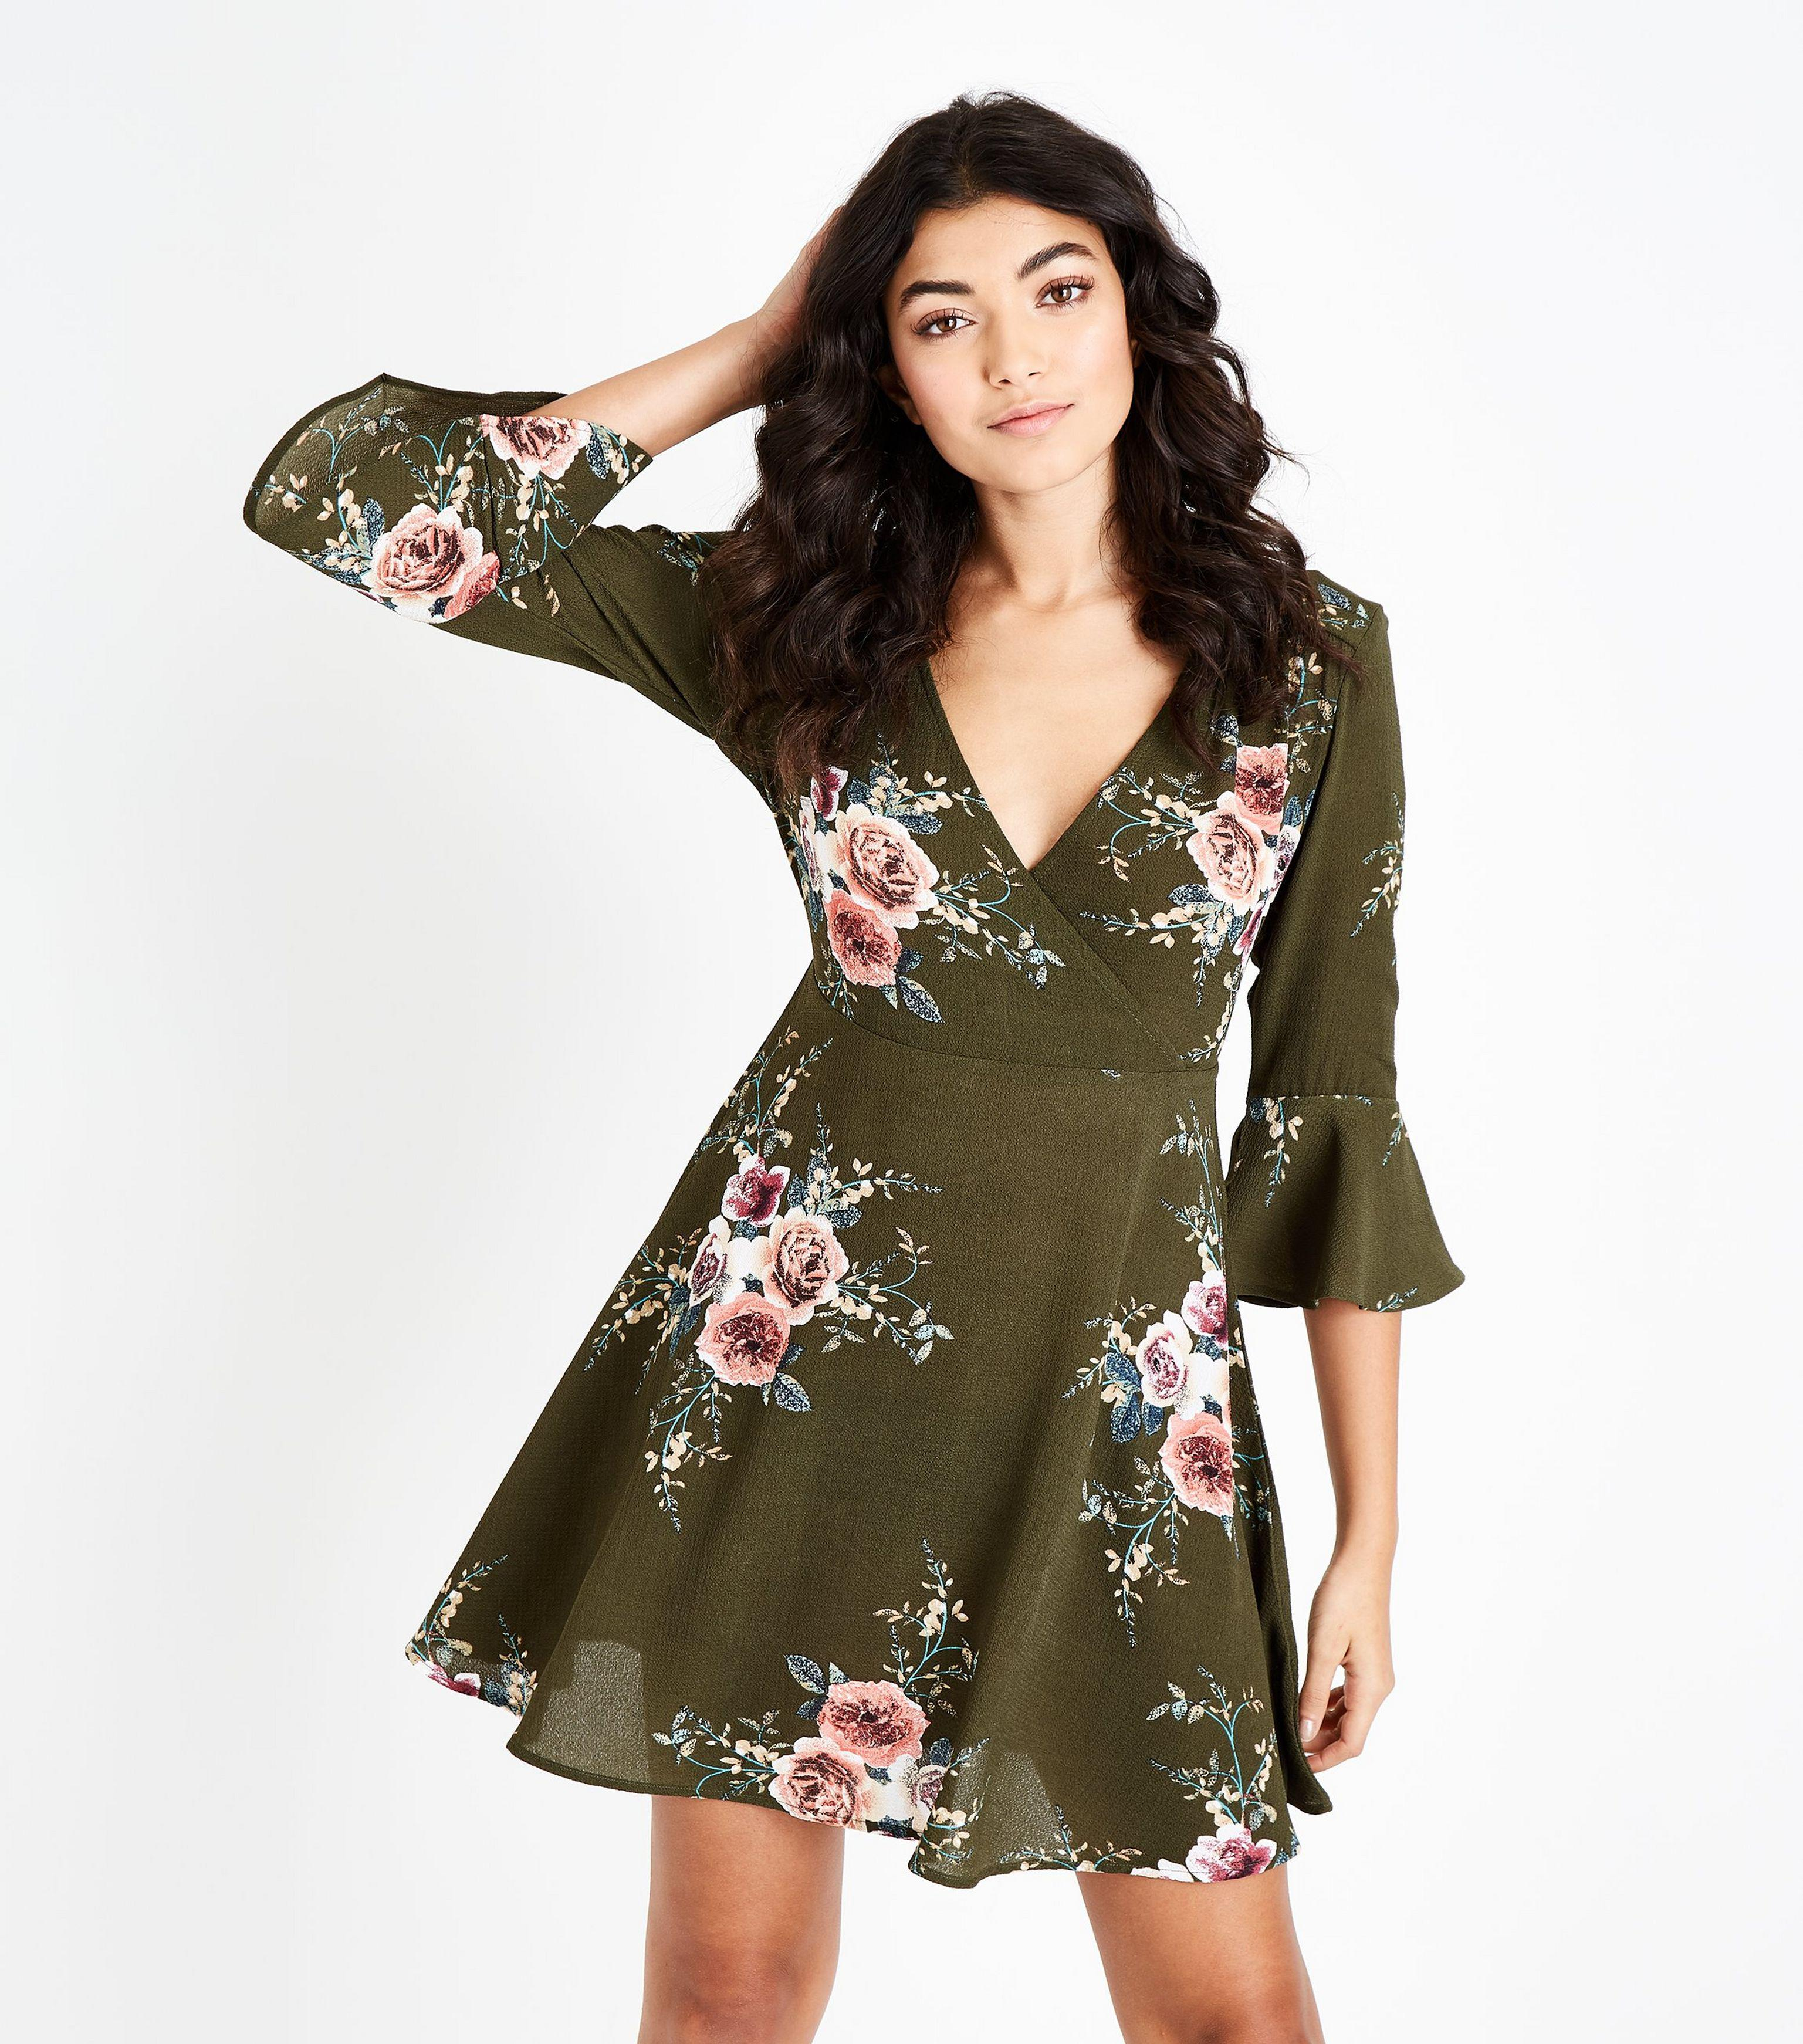 959a8f9ad4 Ax Paris Khaki Floral Wrap Front Skater Dress in Green - Lyst